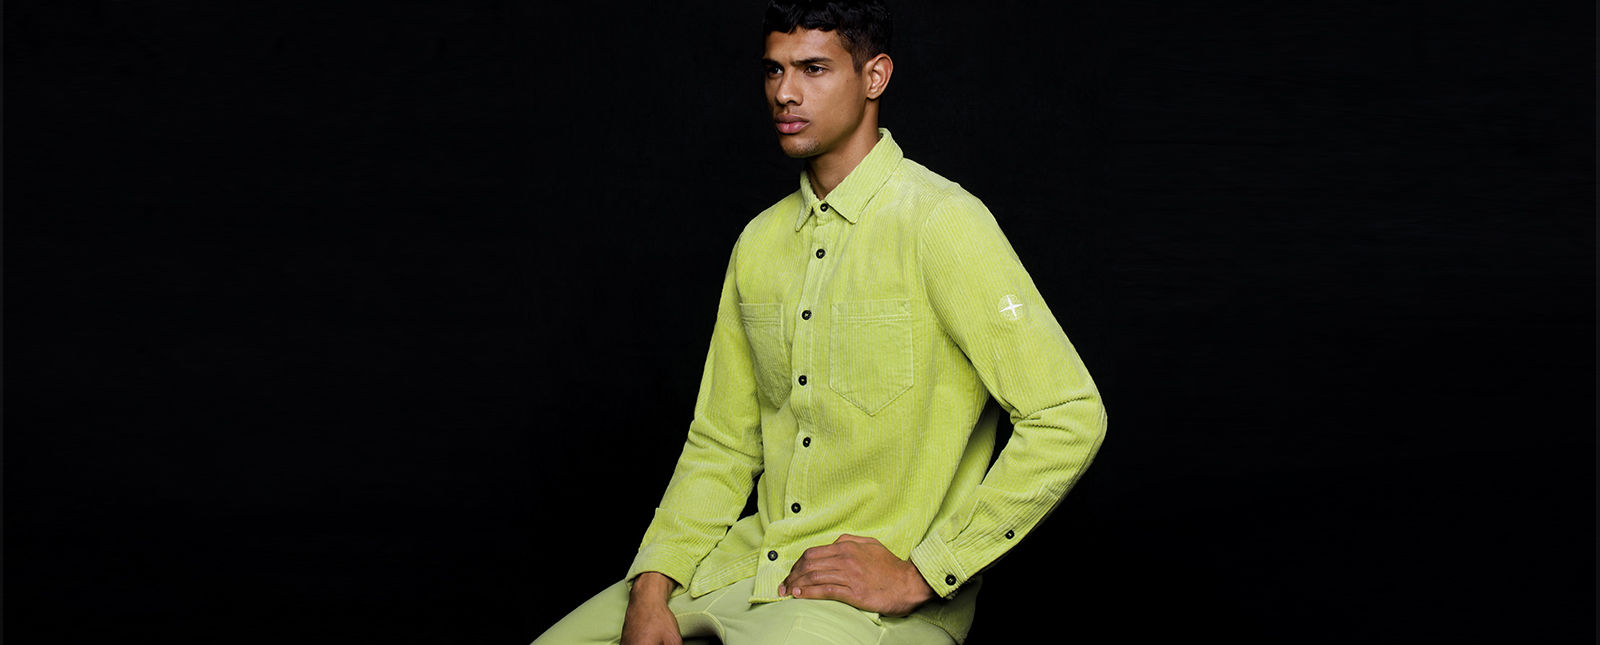 Model wearing lime green shirt with patch pockets at chest and button closure.